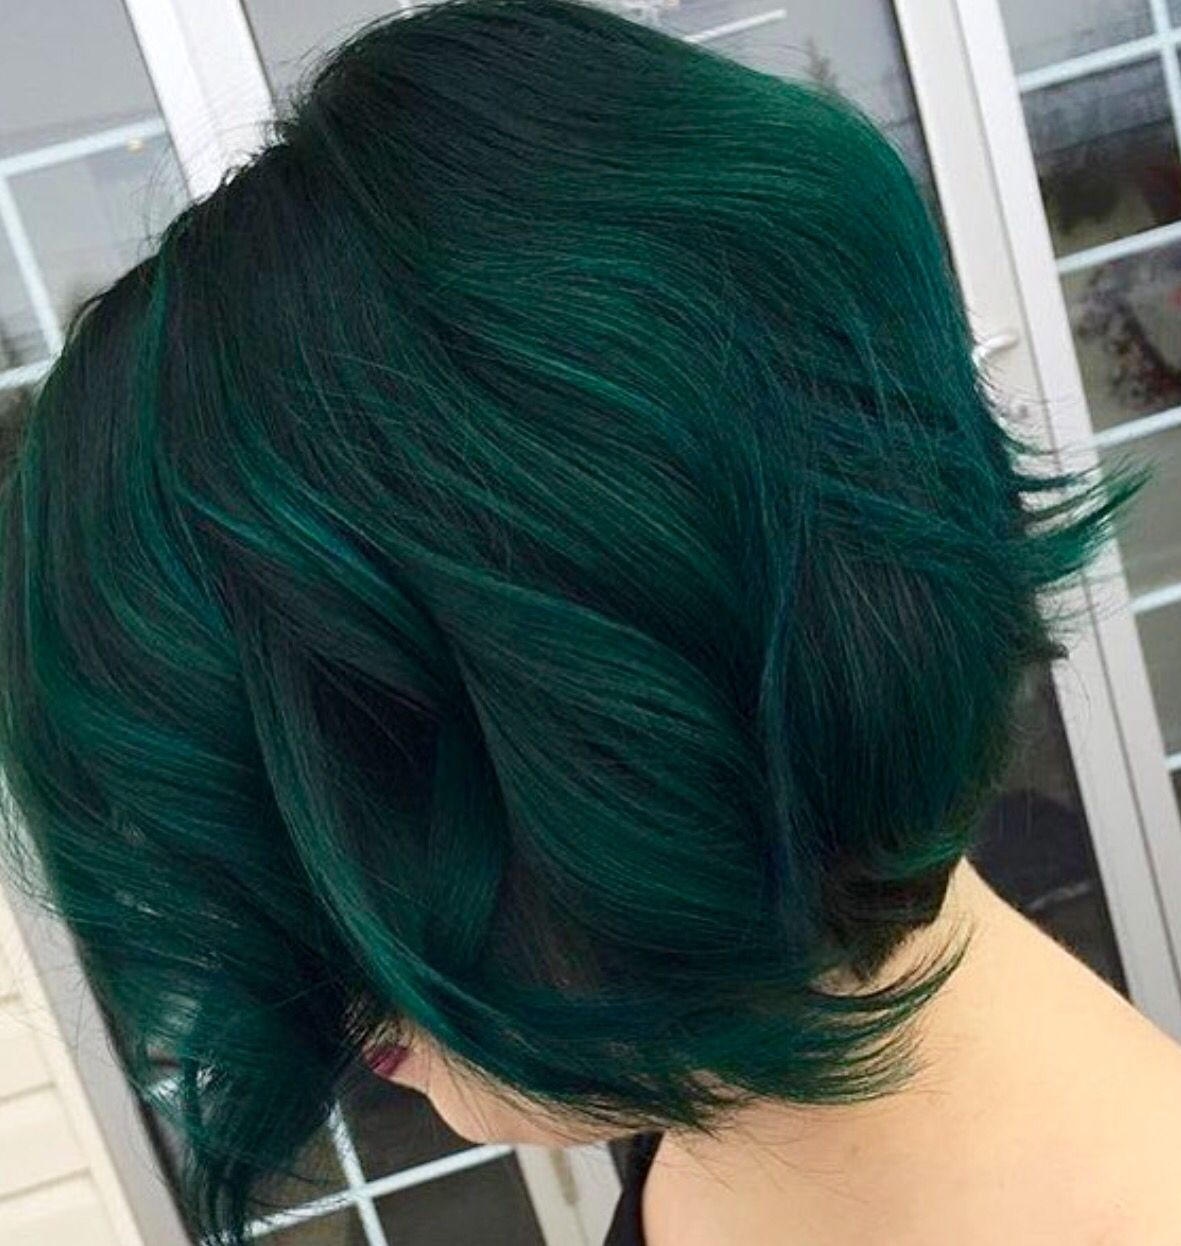 Let Me Be Able To Have Colored Hair Again This Is My Next Vibe Fr Green Hair Dye Dark Green Hair Green Hair